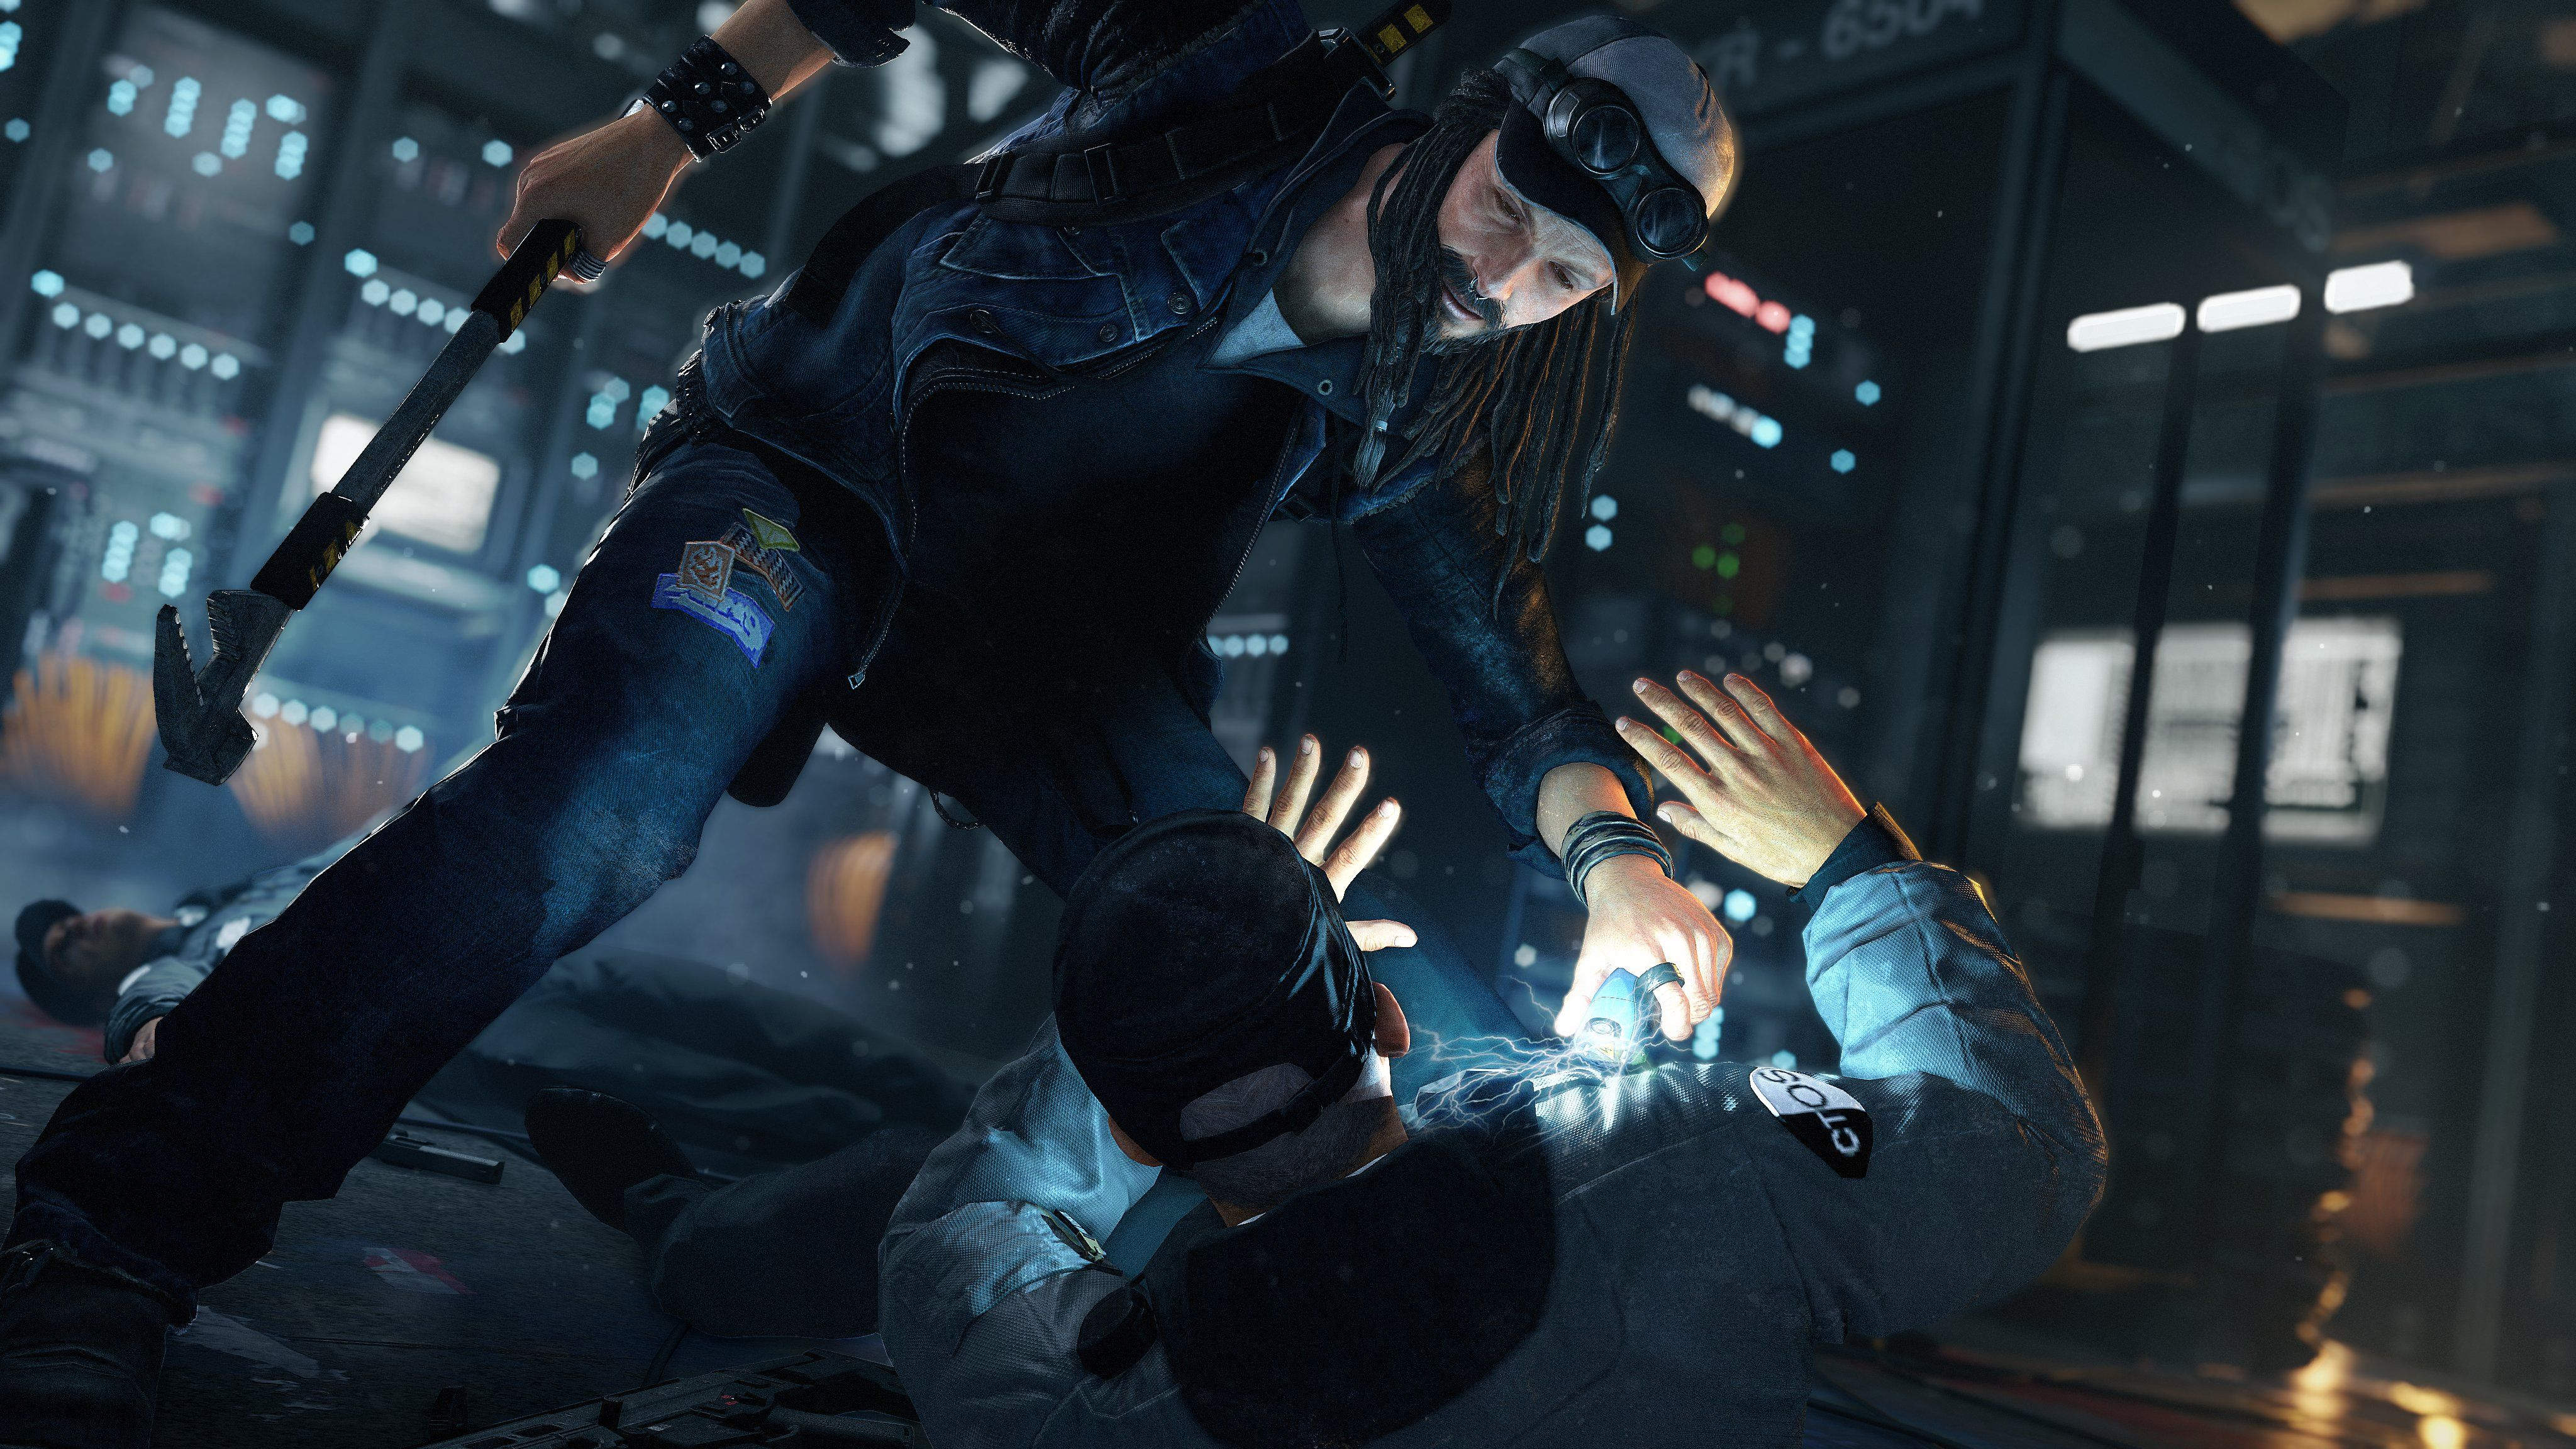 Watch_Dogs Complete Edition (PS4) - 13